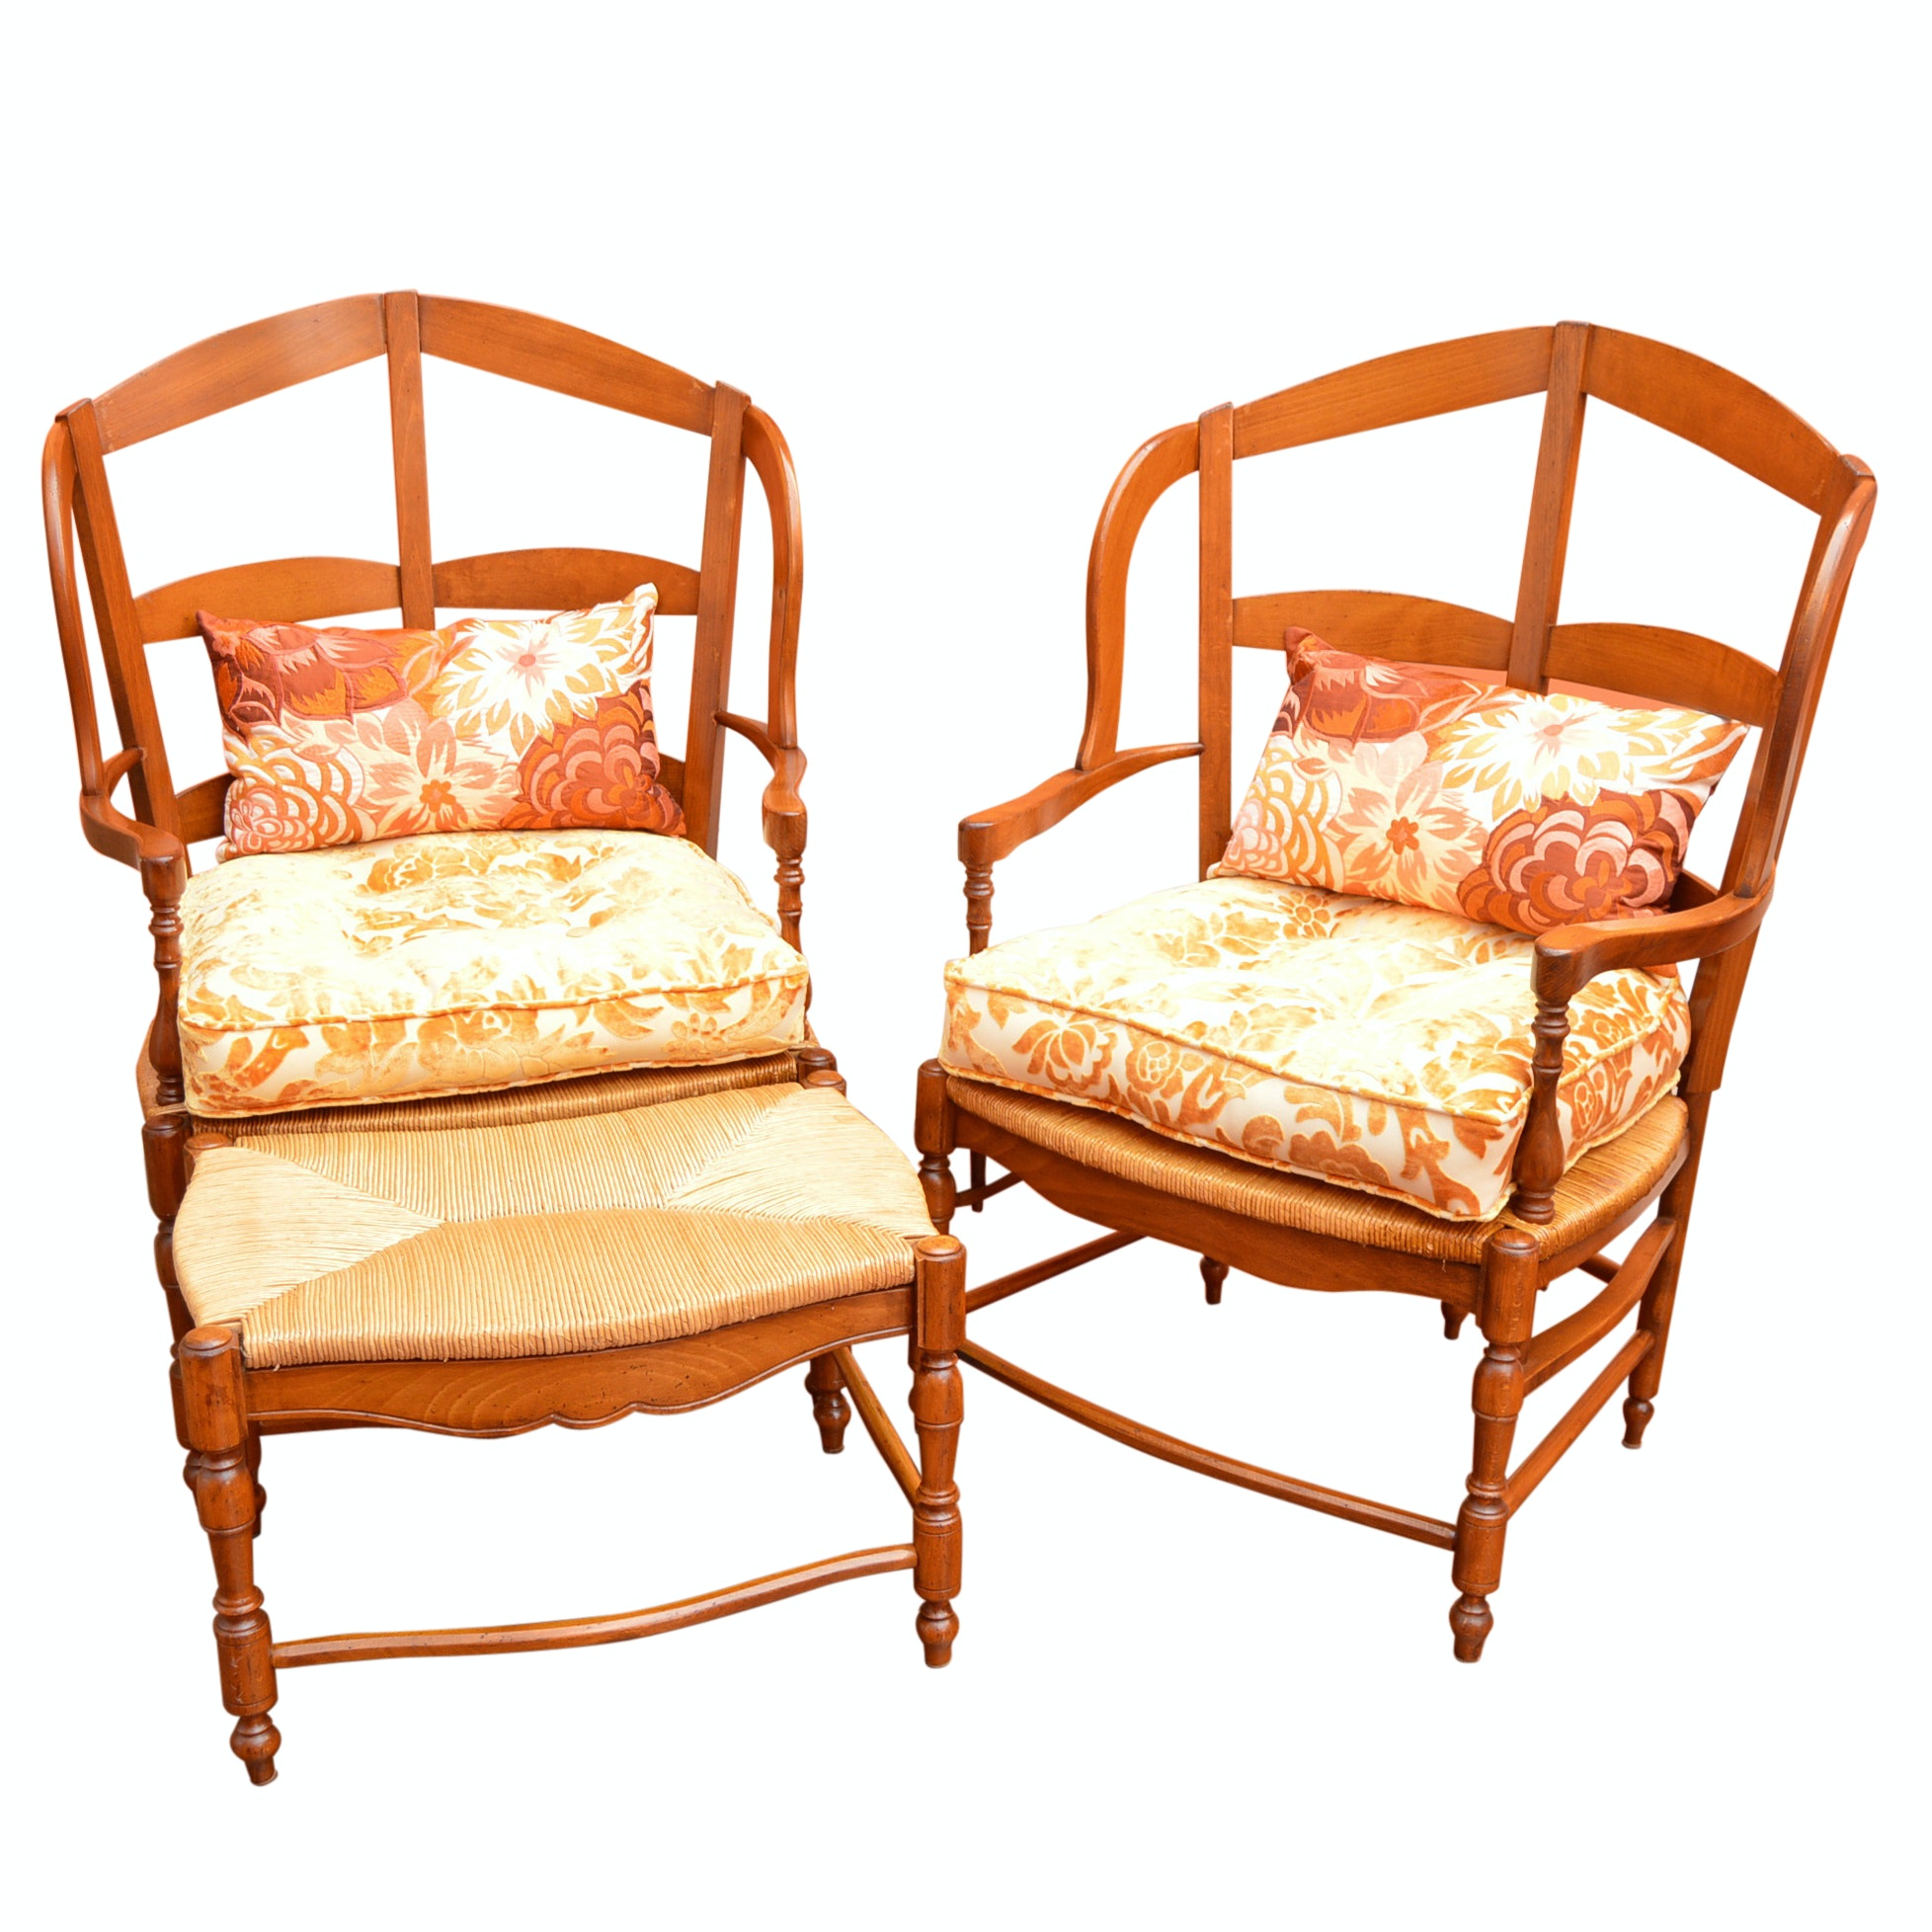 Pair of Vintage French Cherry Chairs With Ottoman